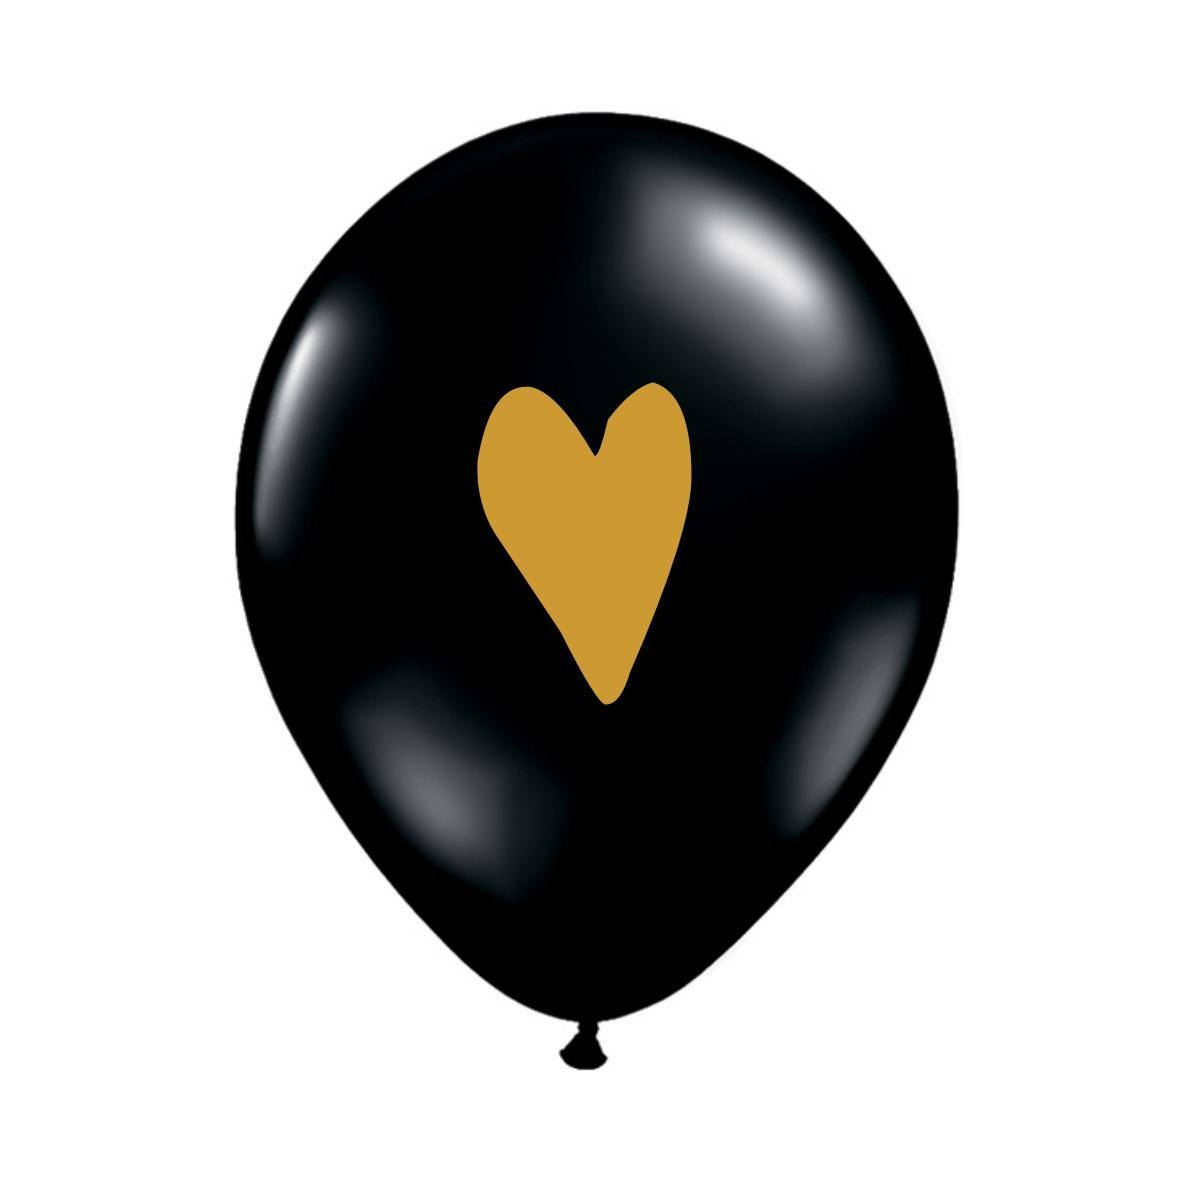 Black and Gold Balloons with a Heart, Love Balloons, Heart Balloon, Bridal Shower Decoration, Valentine's Day Balloons, Set of 3, Engagement Photo Props, Sweetheart Gift, Valentine's Gift for Her